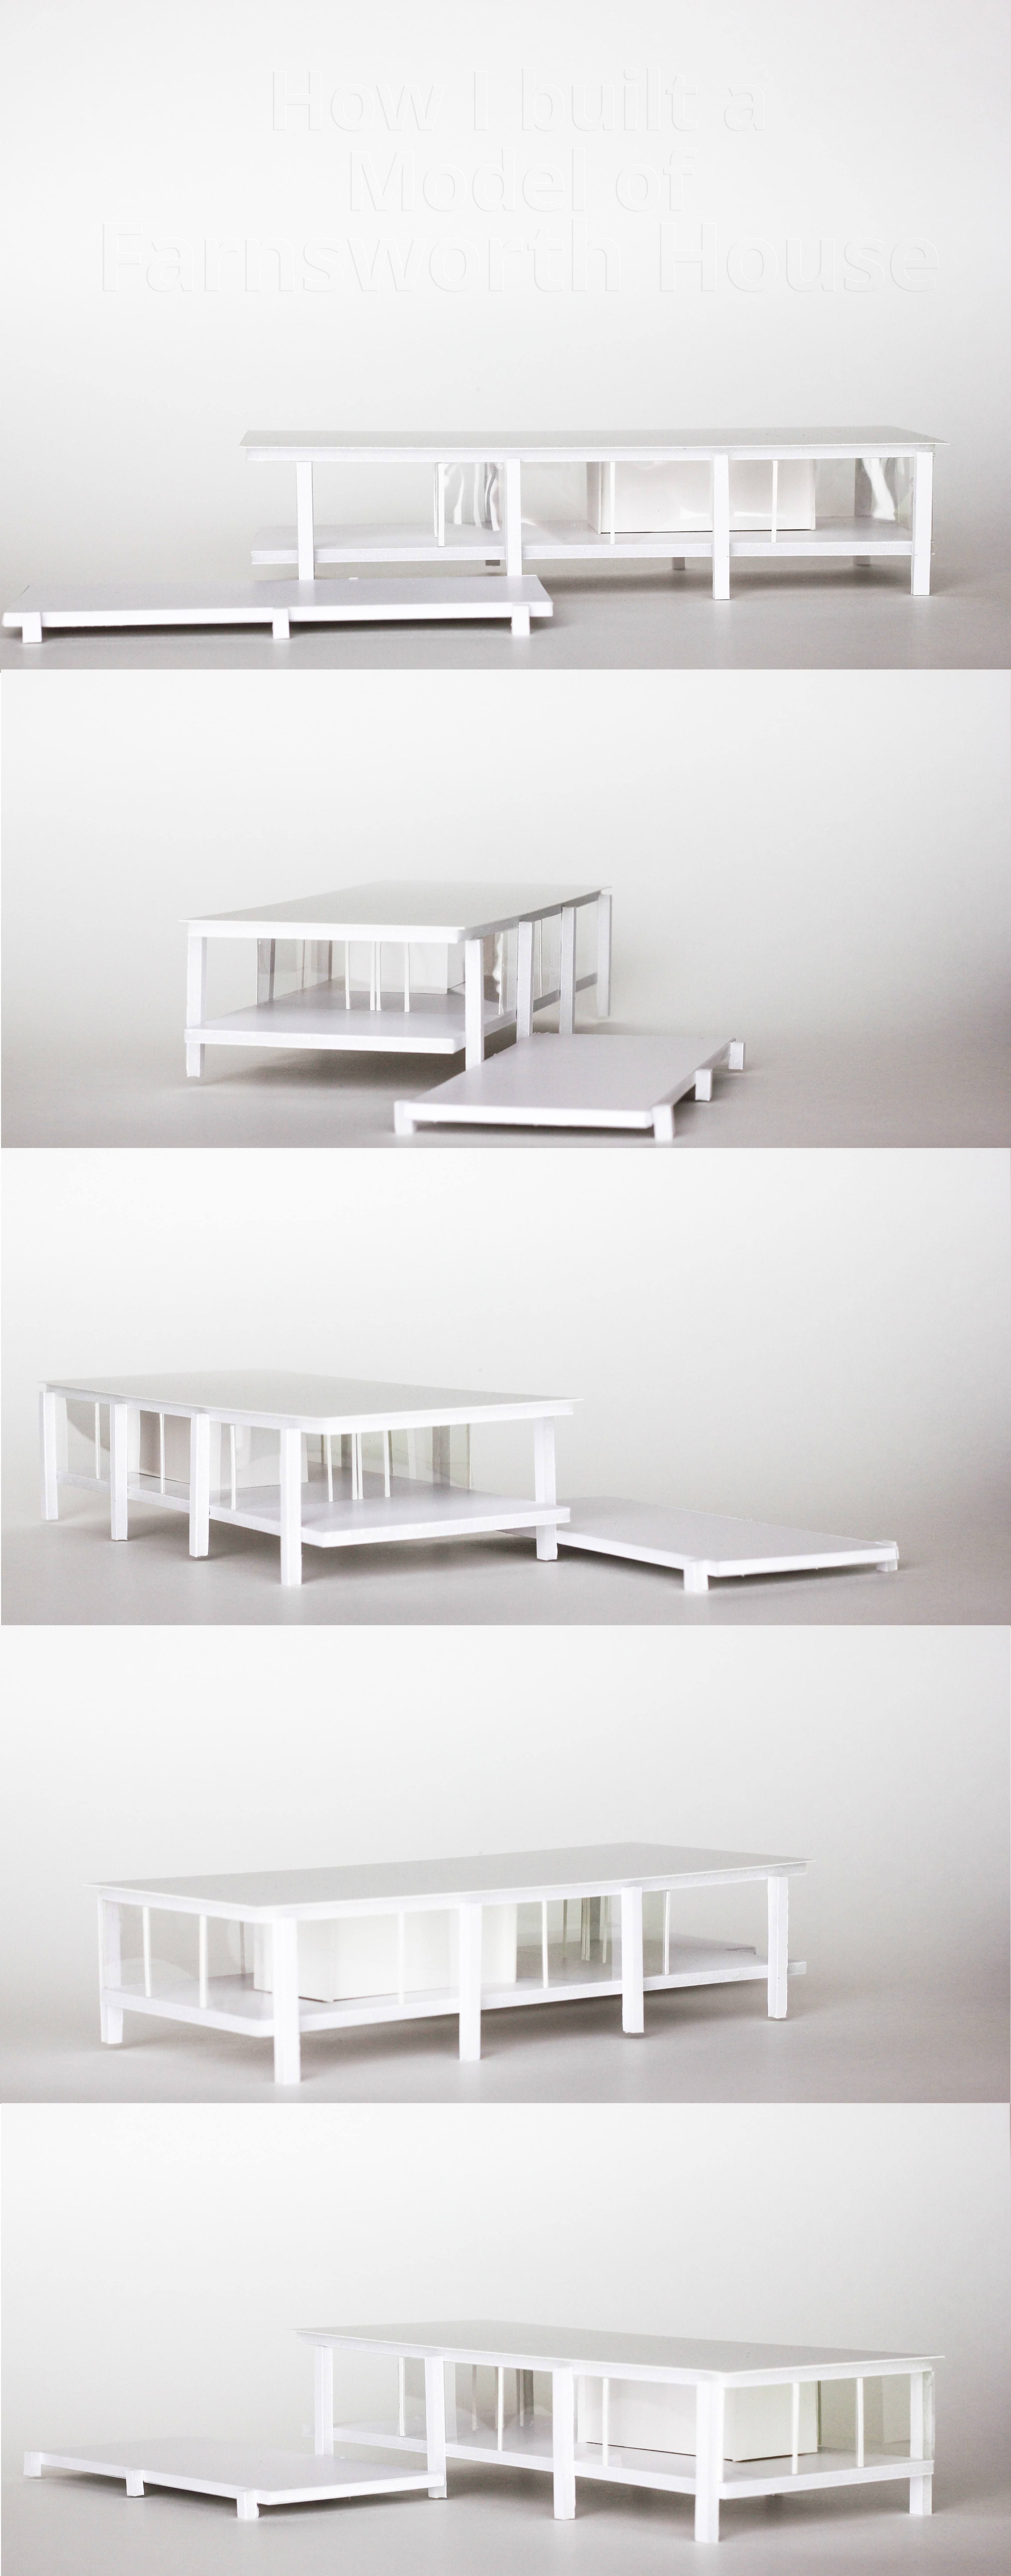 Farnsworth house by mies van der rohe exterior 8 jpg - How I Built A Model Of Farnsworth House Modern Architectural Model By Mies Van Der